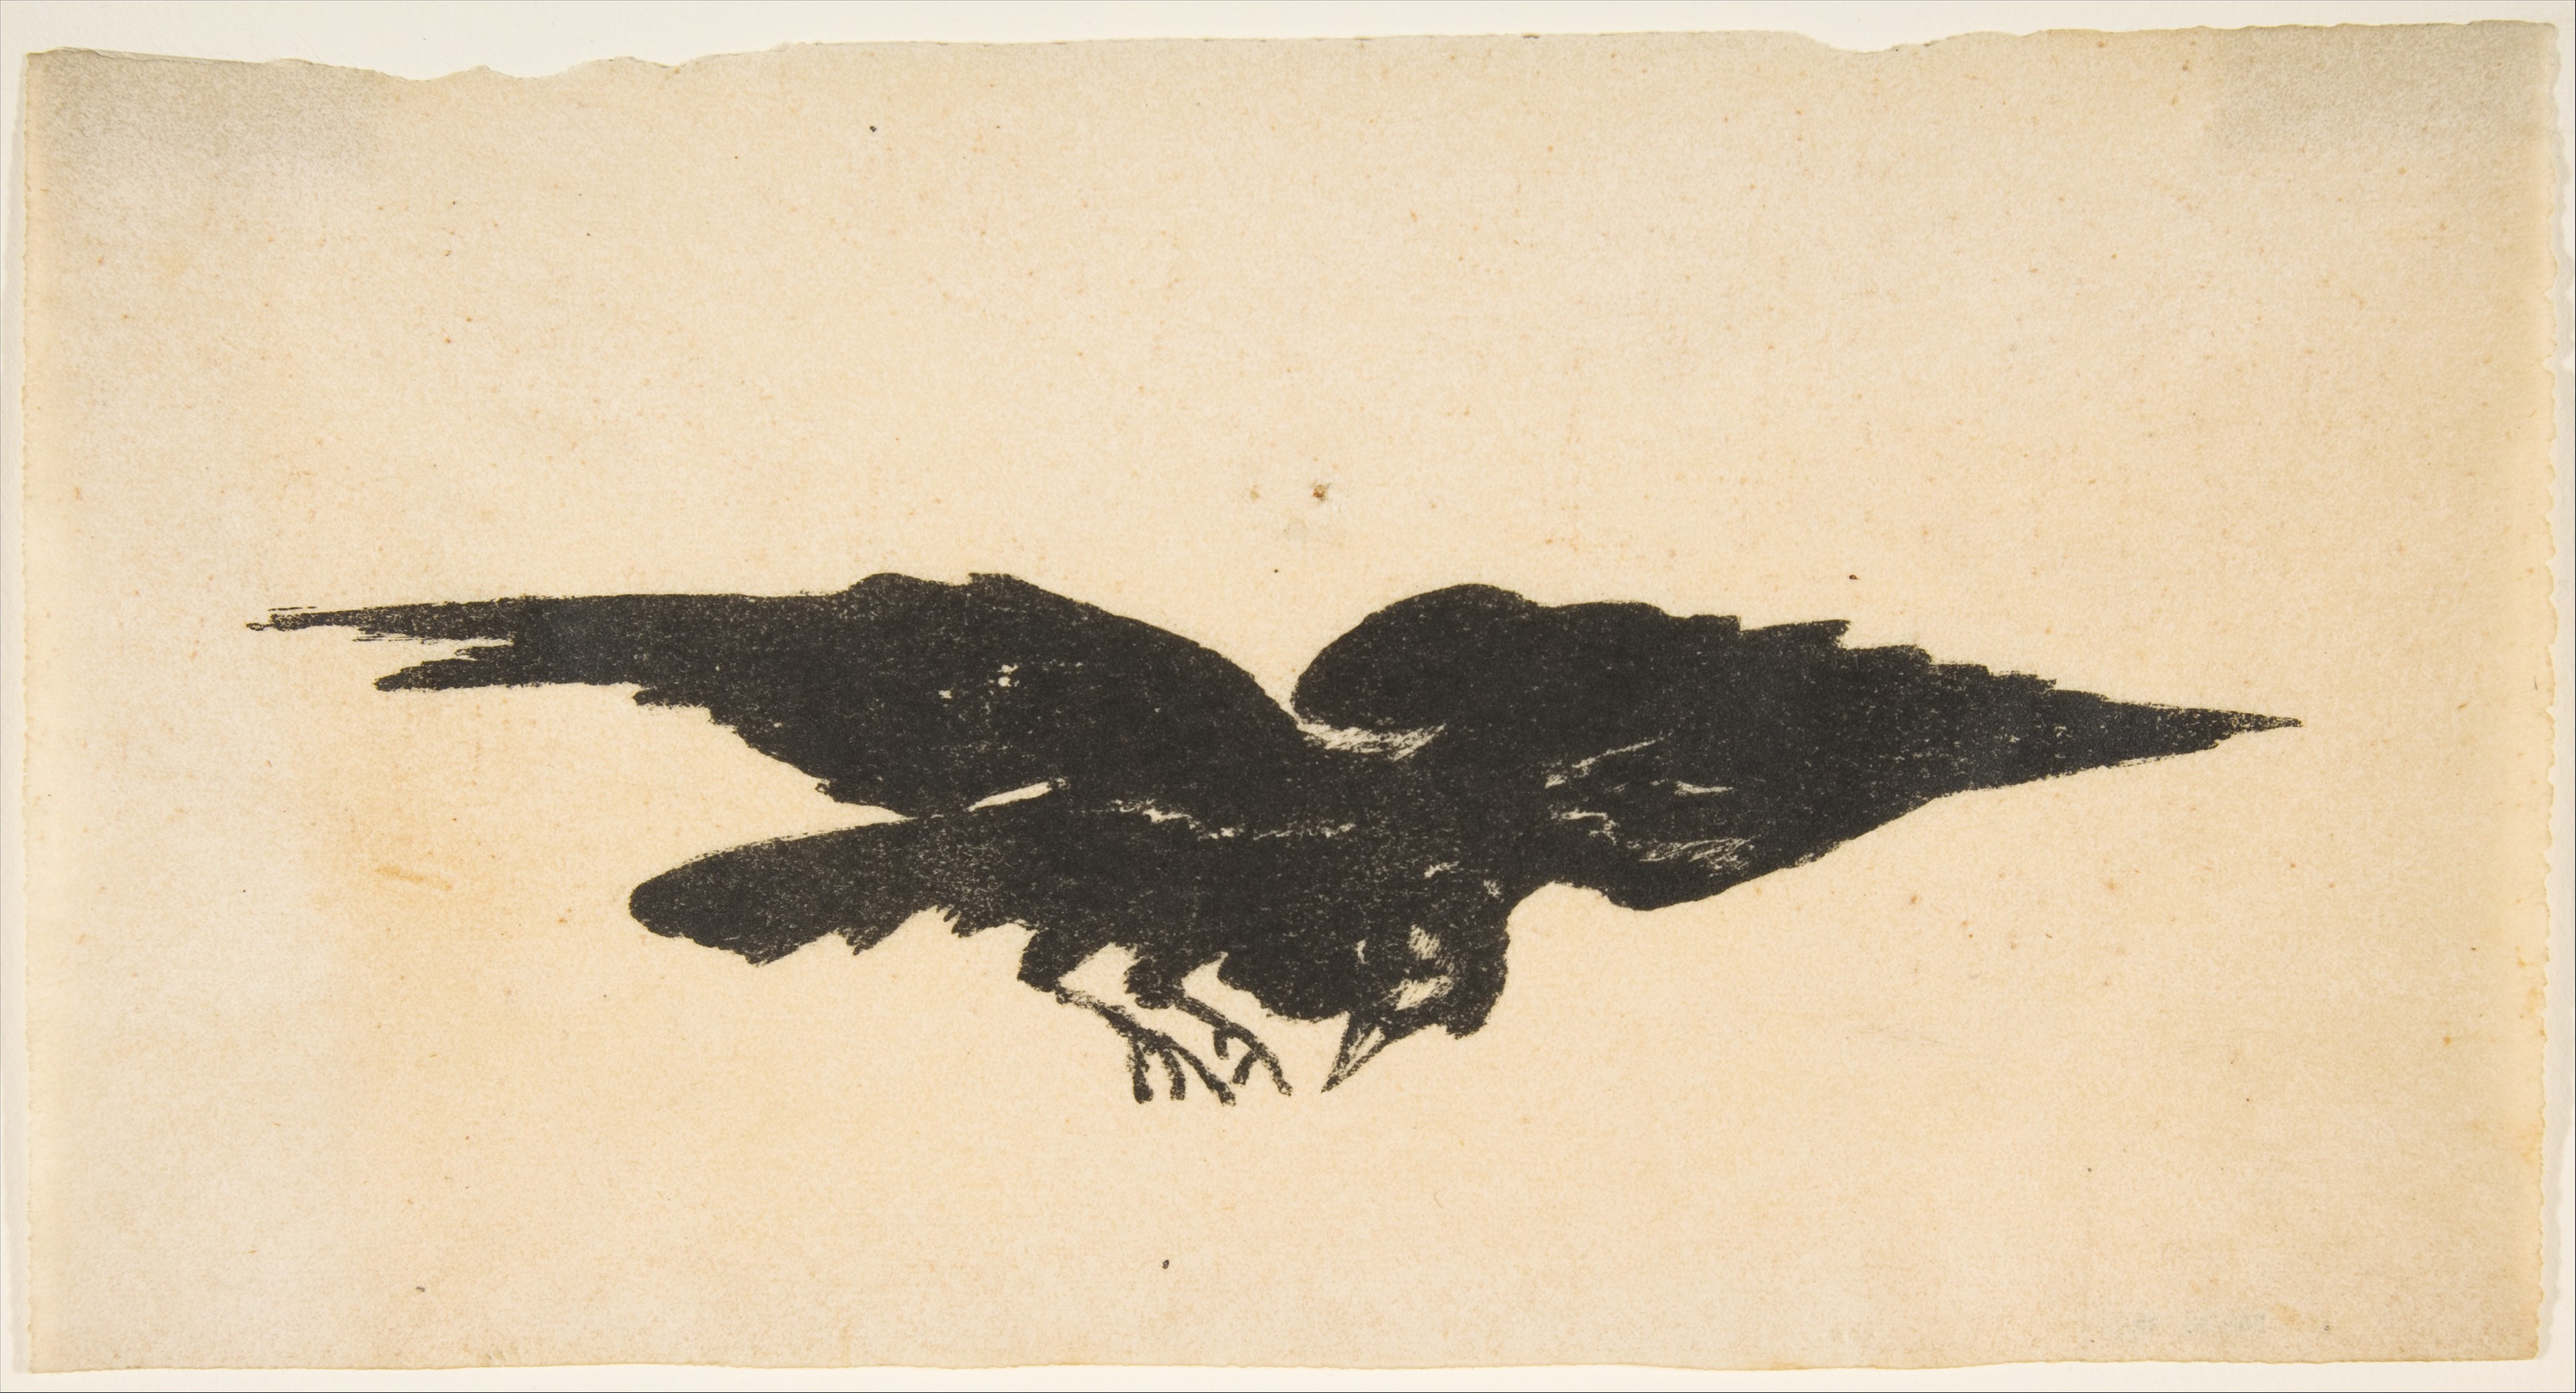 eacute douard manet the flying raven ex libris for the raven by edgar share by email